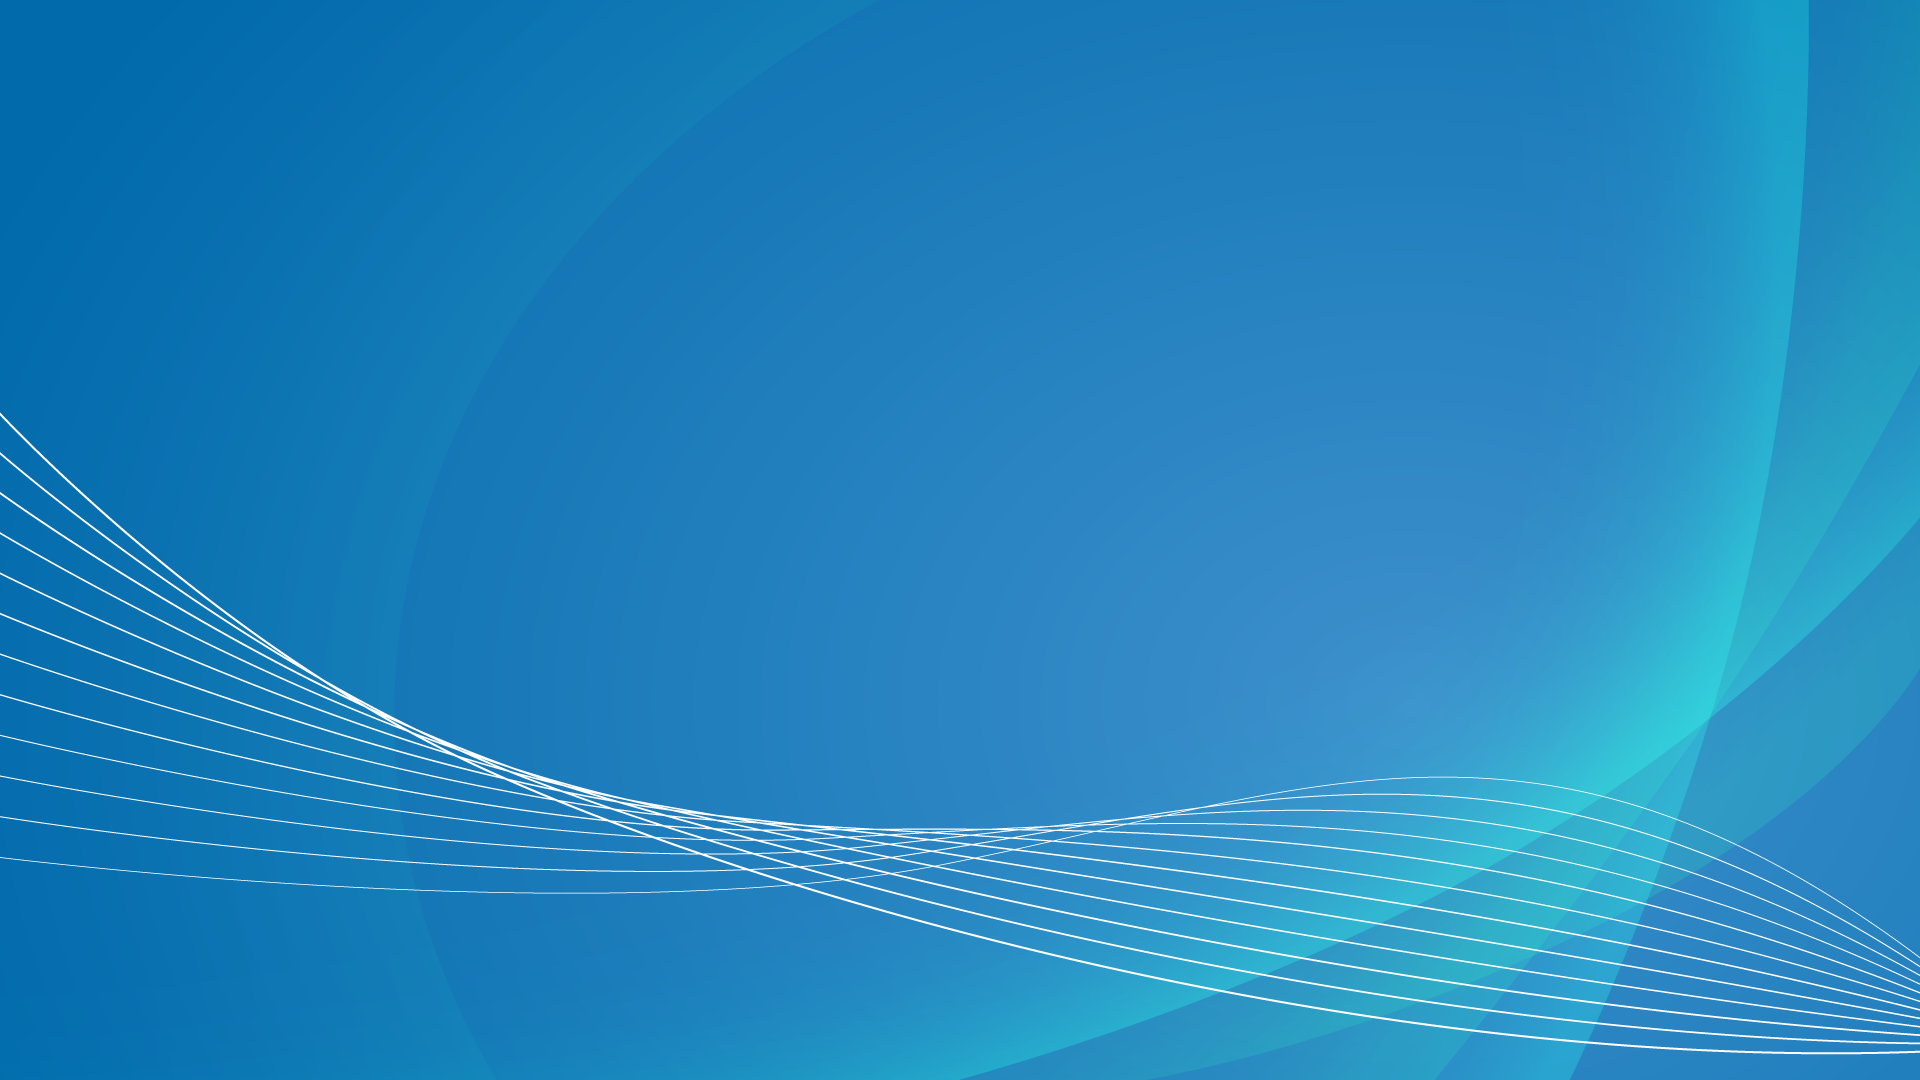 bg_abstract1_blue.png